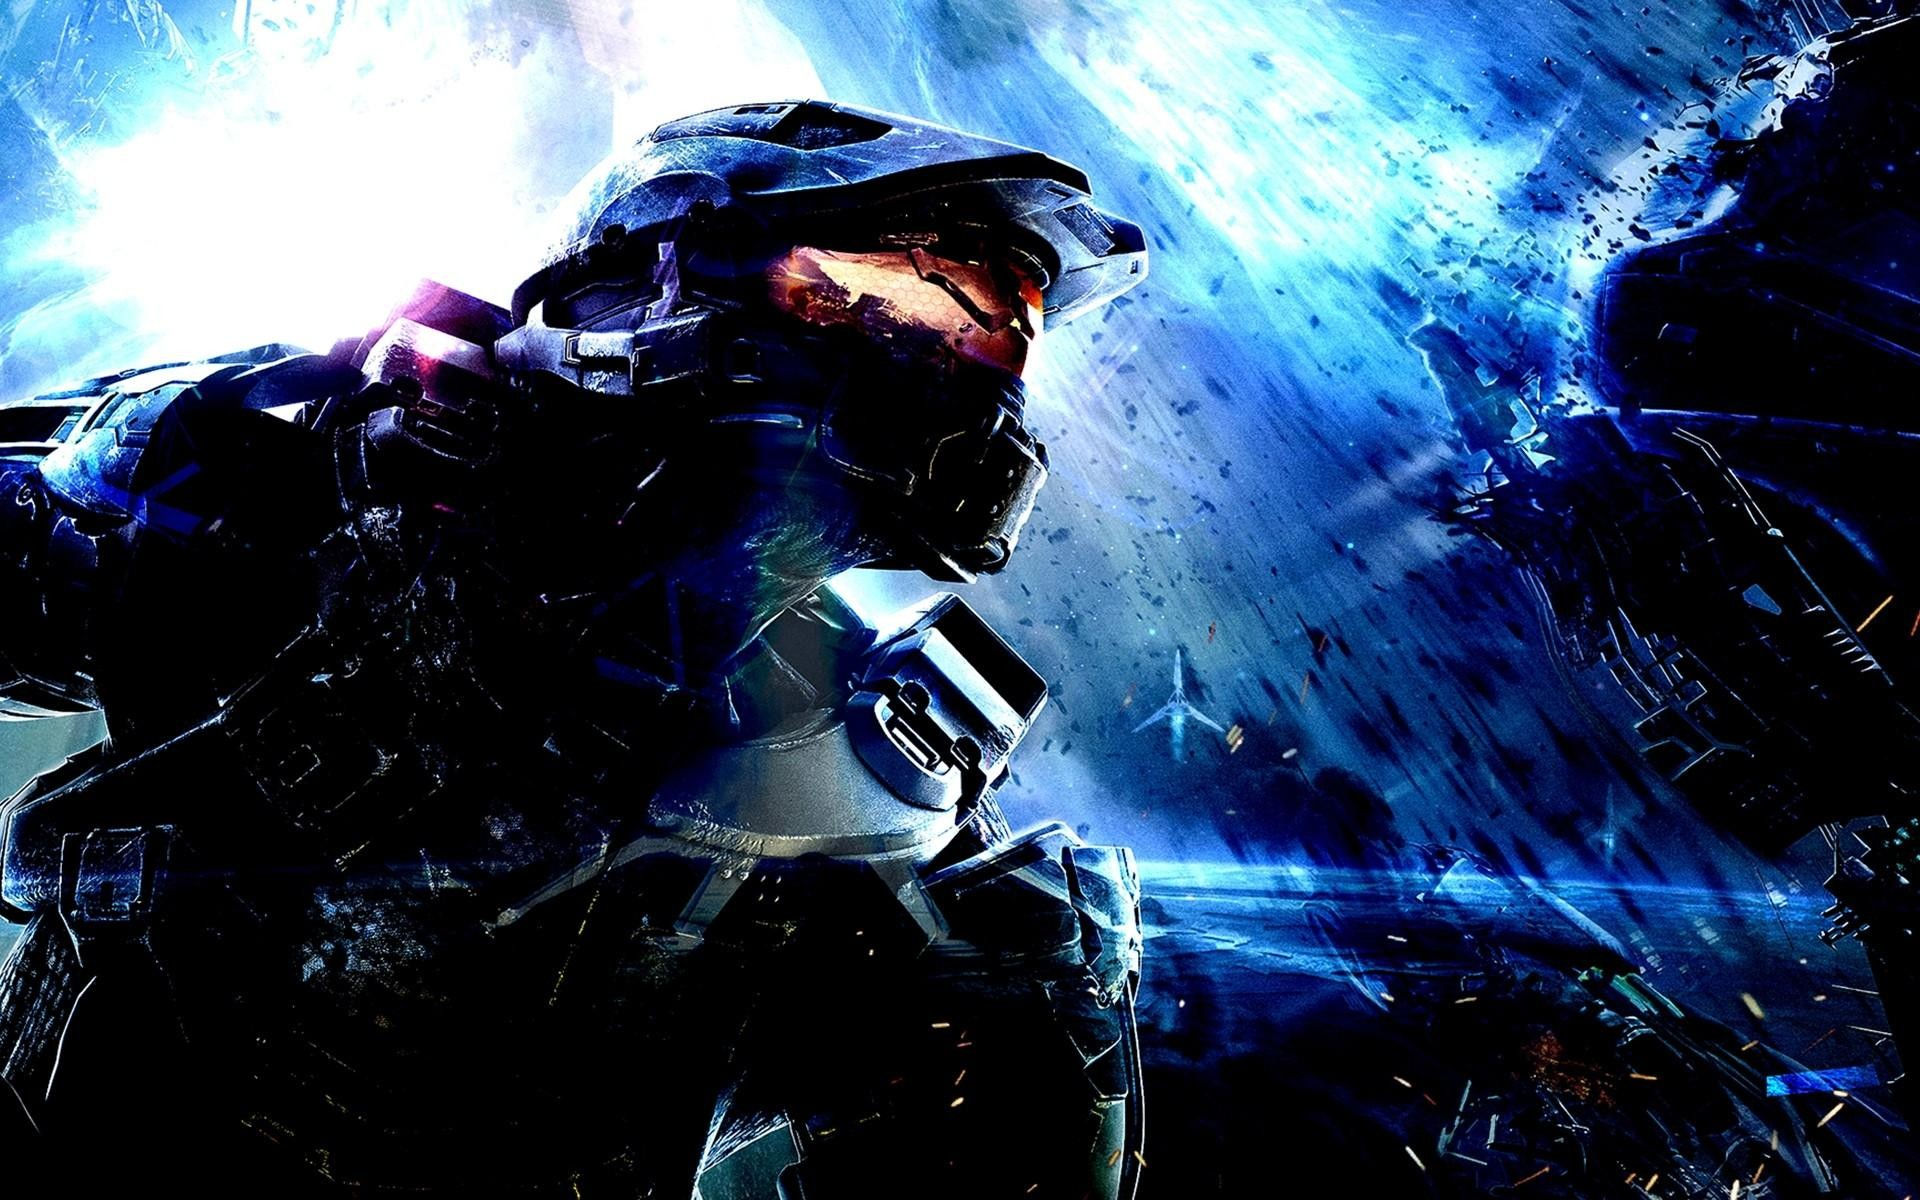 Epic Game Wallpapers 87 Images